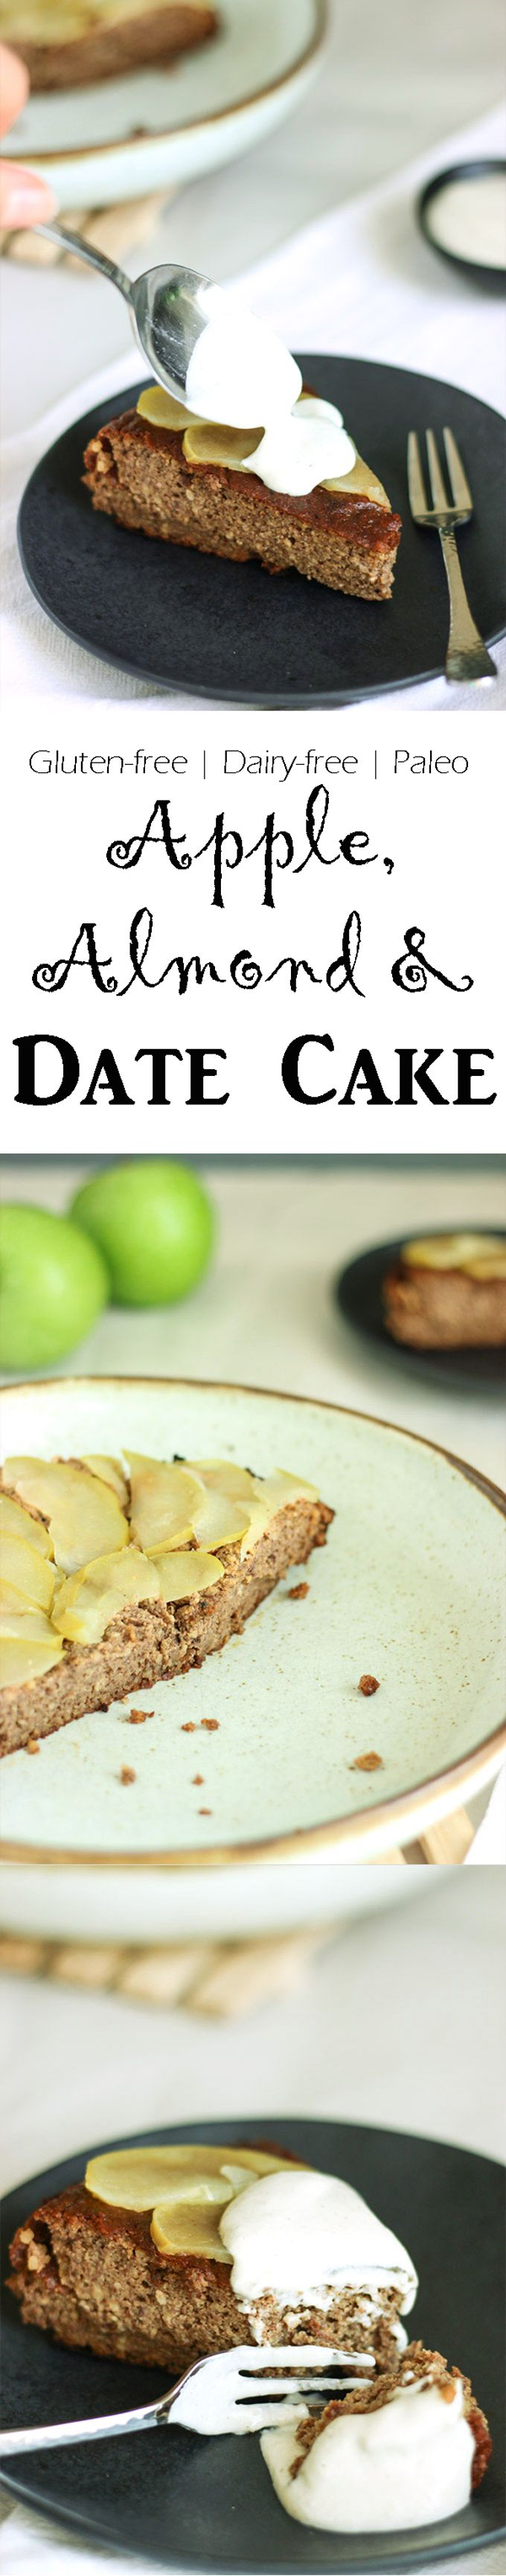 Gluten-free, paleo, dairy-free apple, almond and date cake. Easy and delicious!